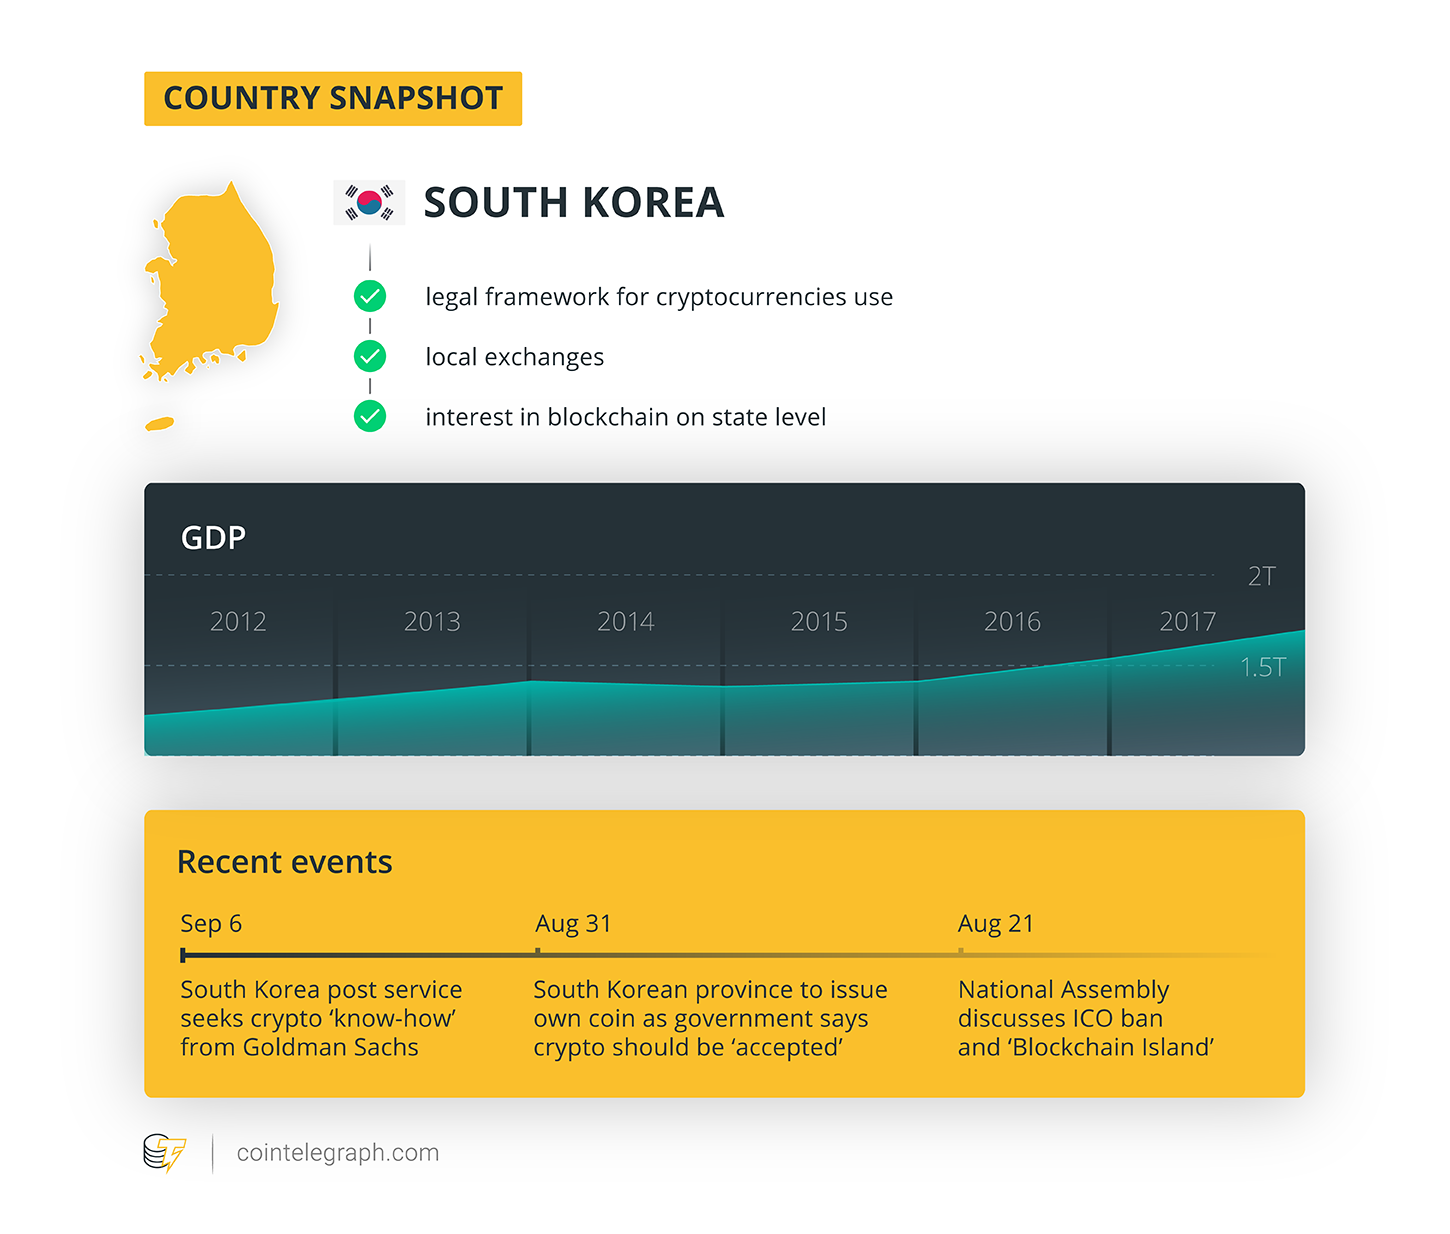 Country snapshot (South Korea)